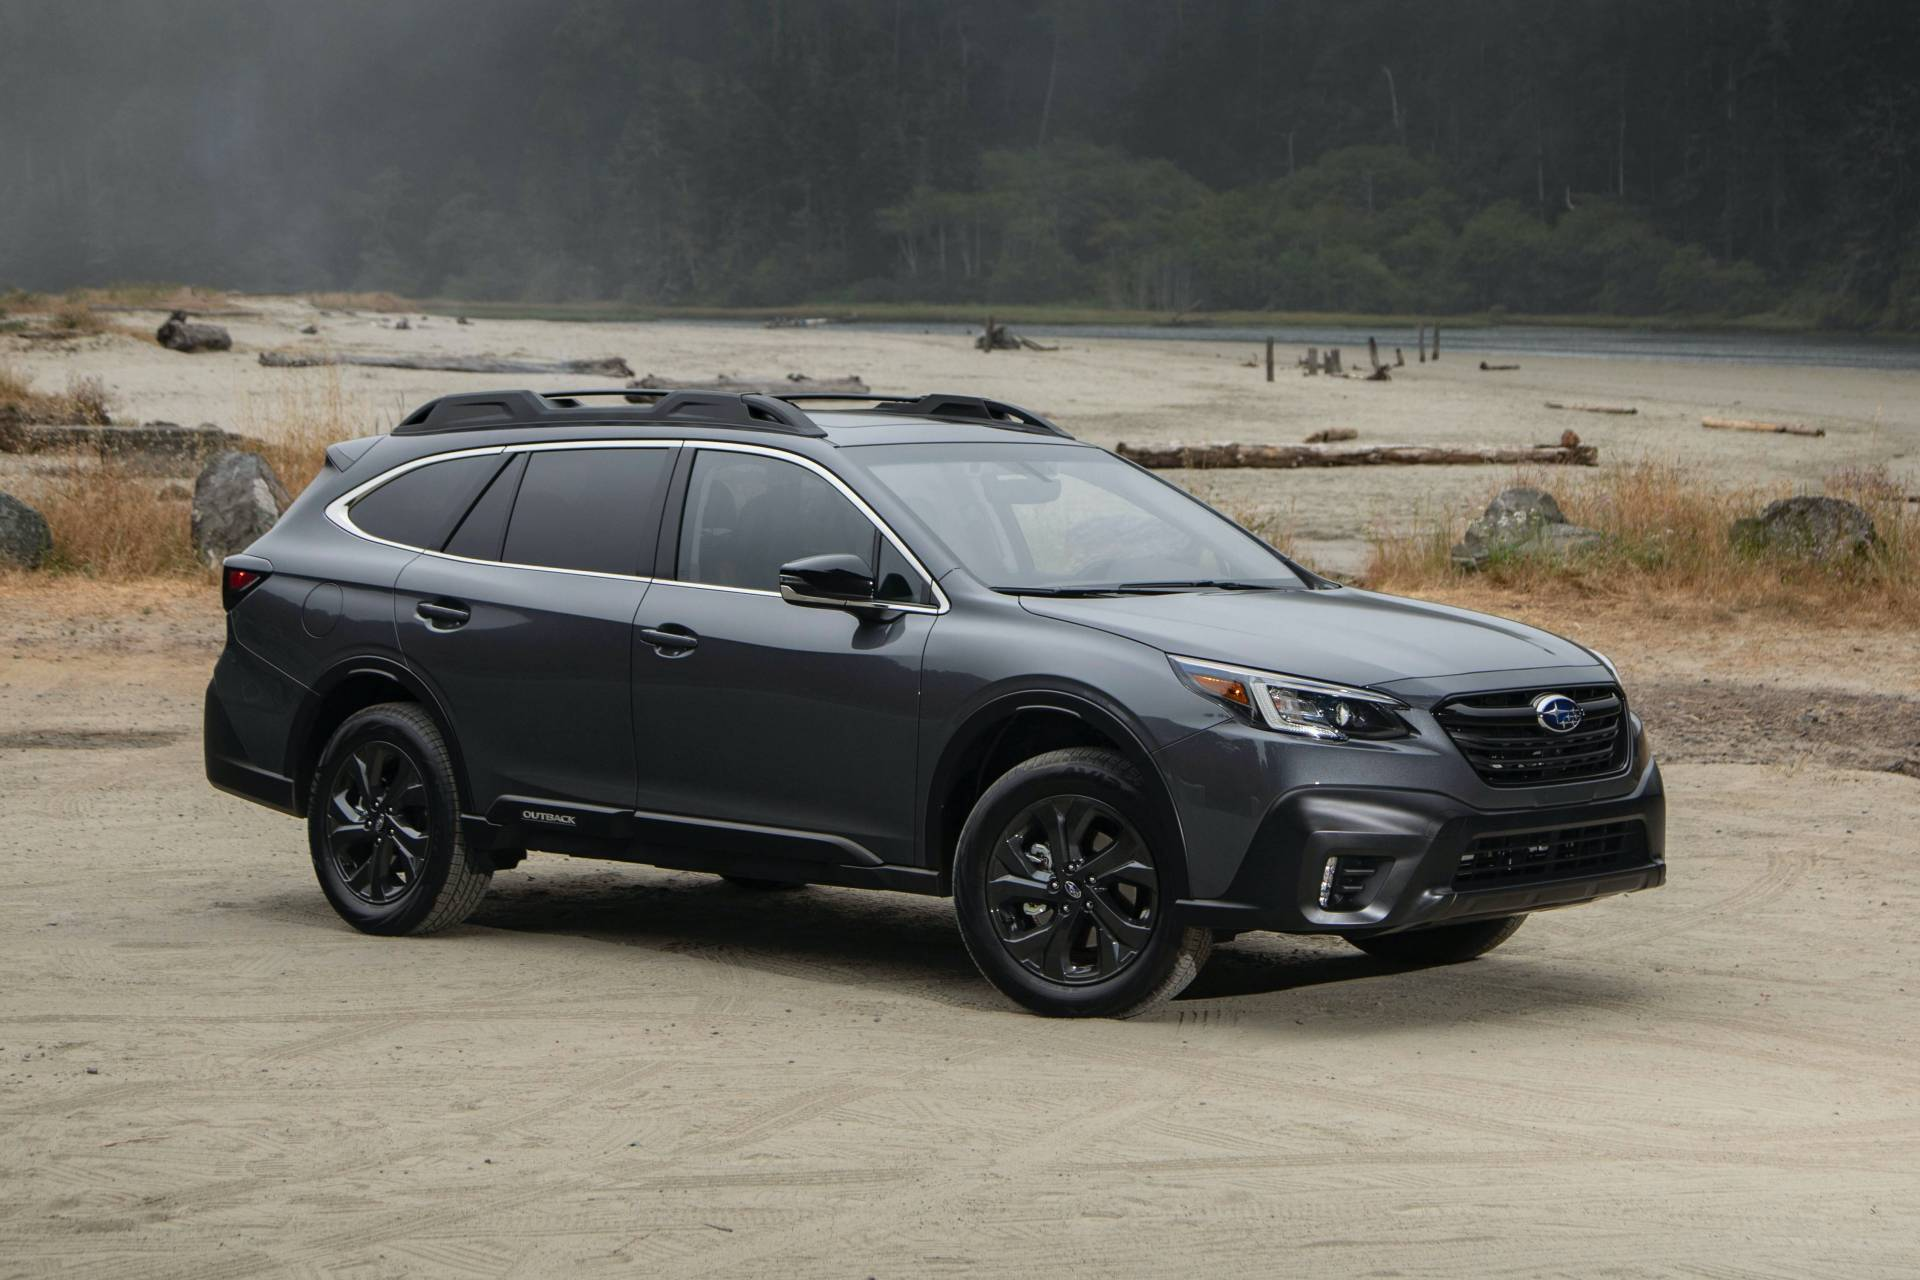 Subaru Outback Owns US Wagon Market With Astounding 85.7 ...